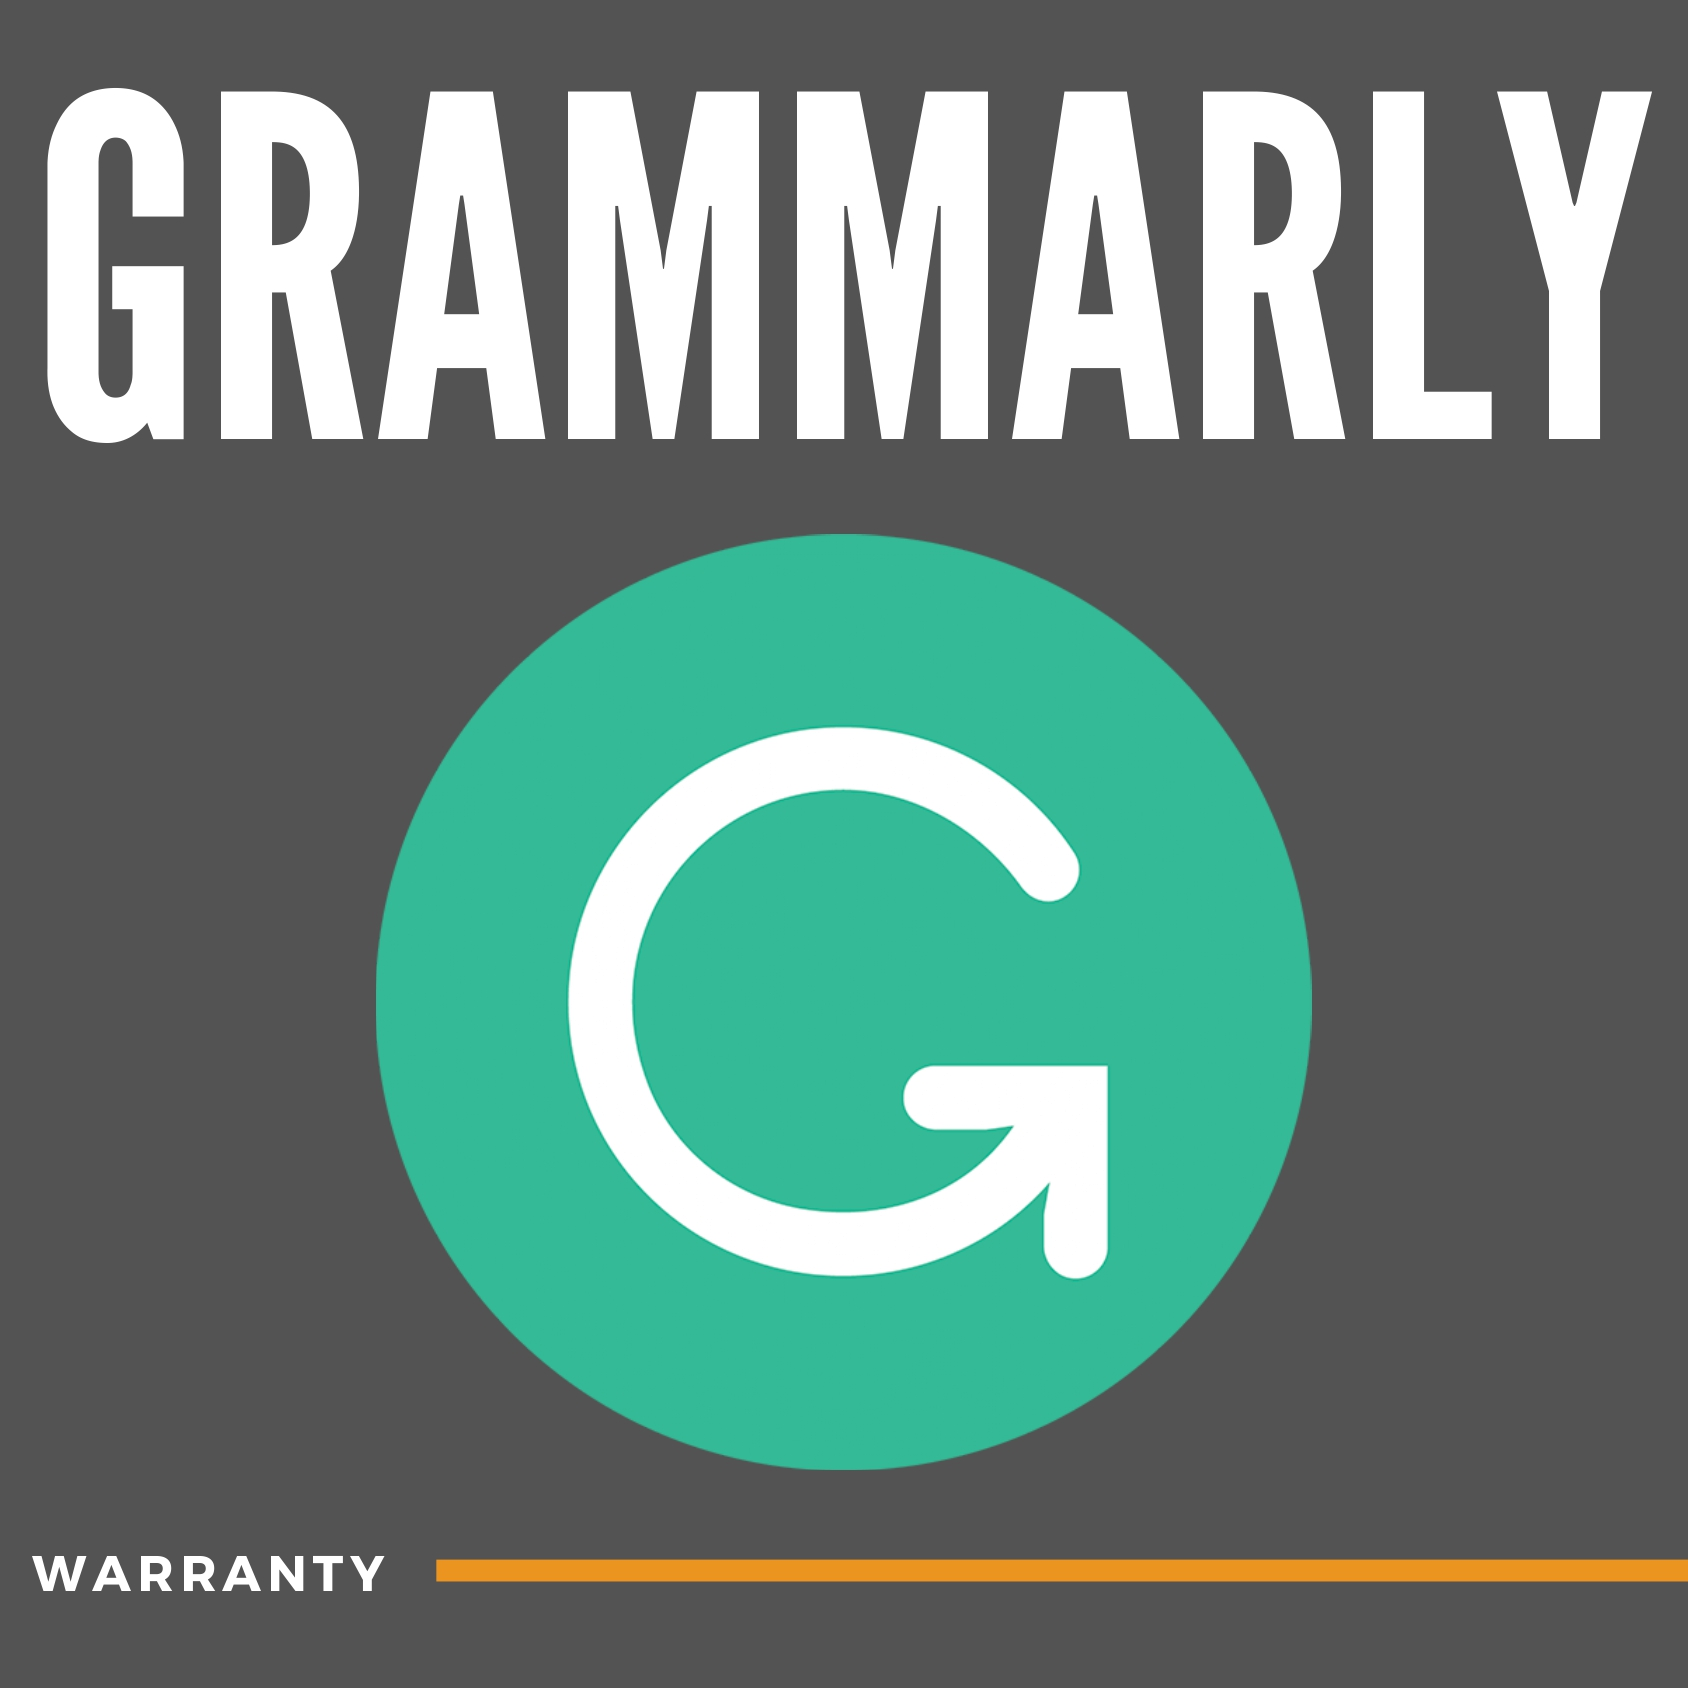 ✅ GRAMMARLY PREMIUM ACCOUNT l WARRANTY 6 MONTHS